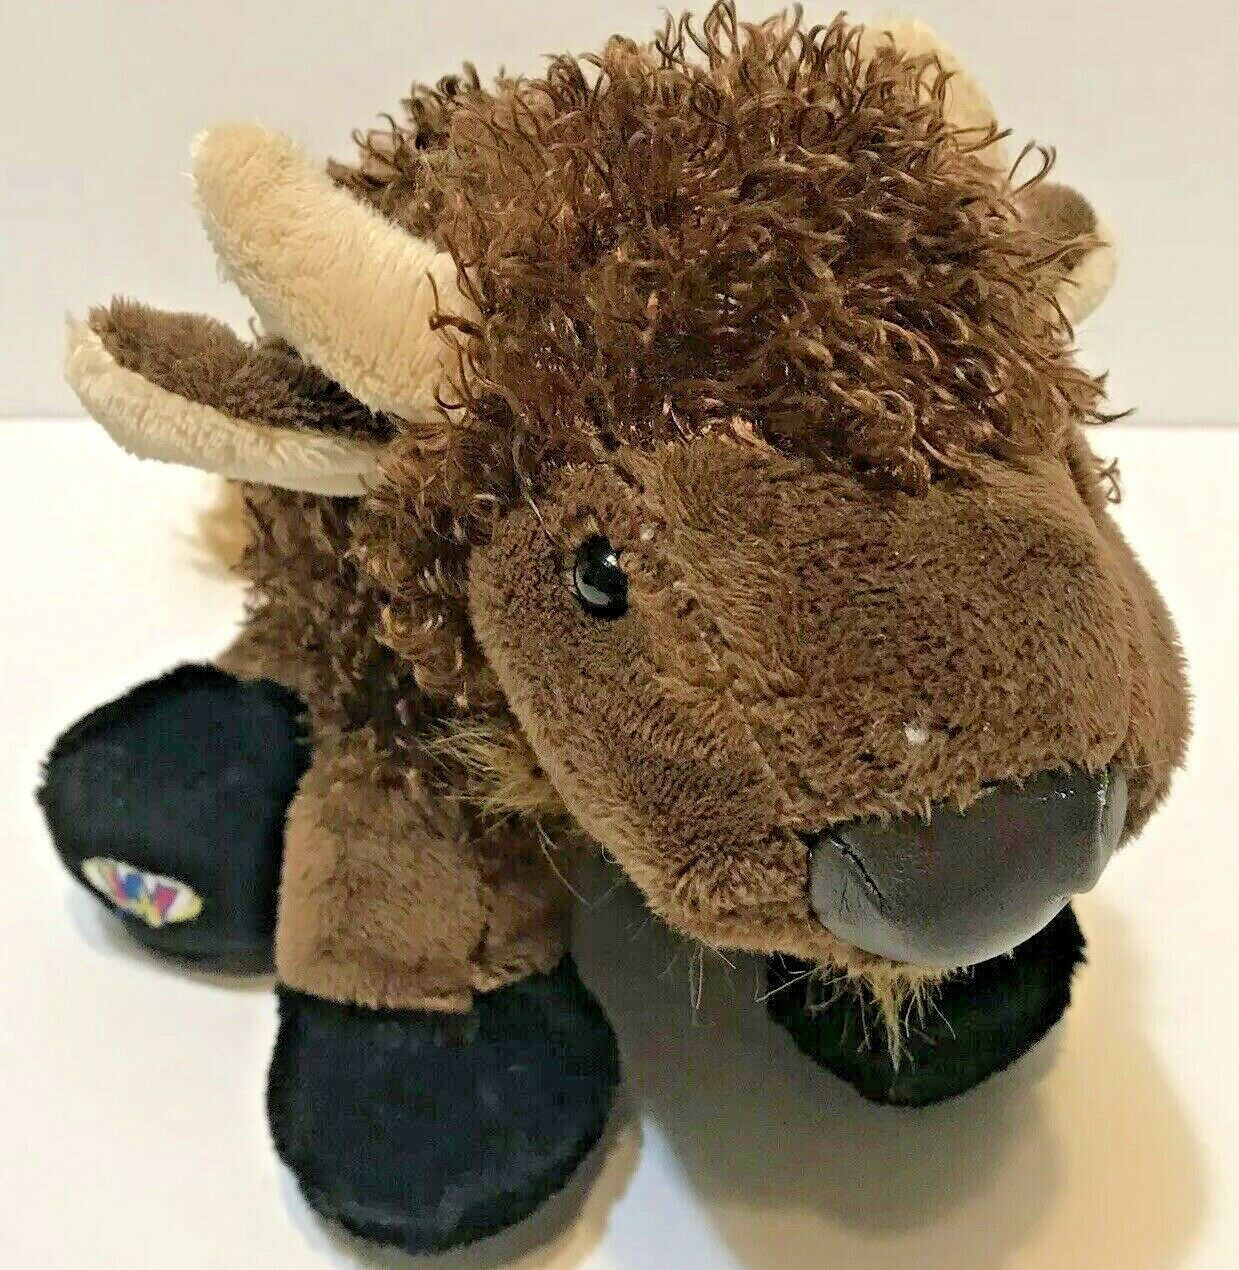 Primary image for GANZ Webkinz Buffalo HM336 Brown with Vinyl Nose Black Feet